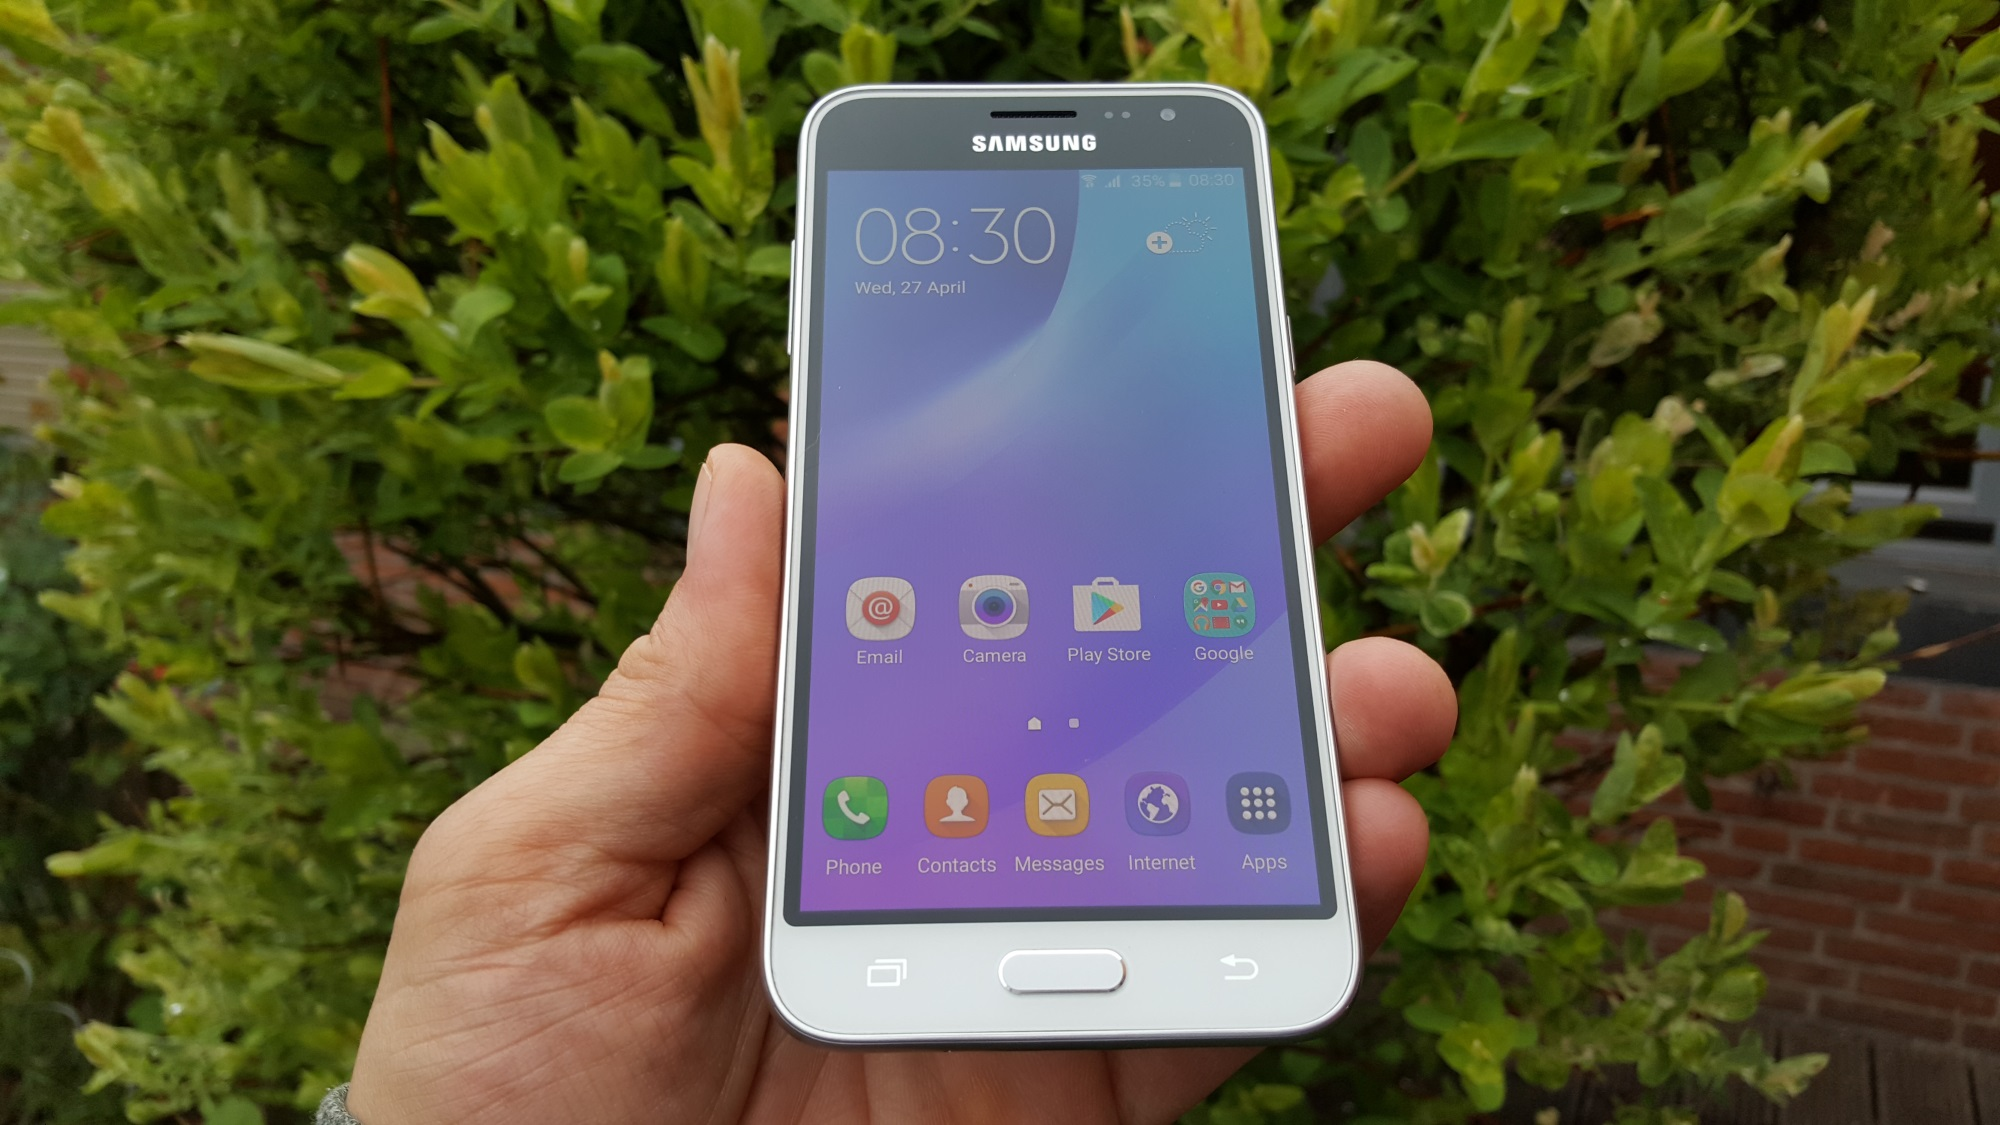 samsung galaxy j3 2016 review amoled for the masses sammobile sammobile. Black Bedroom Furniture Sets. Home Design Ideas